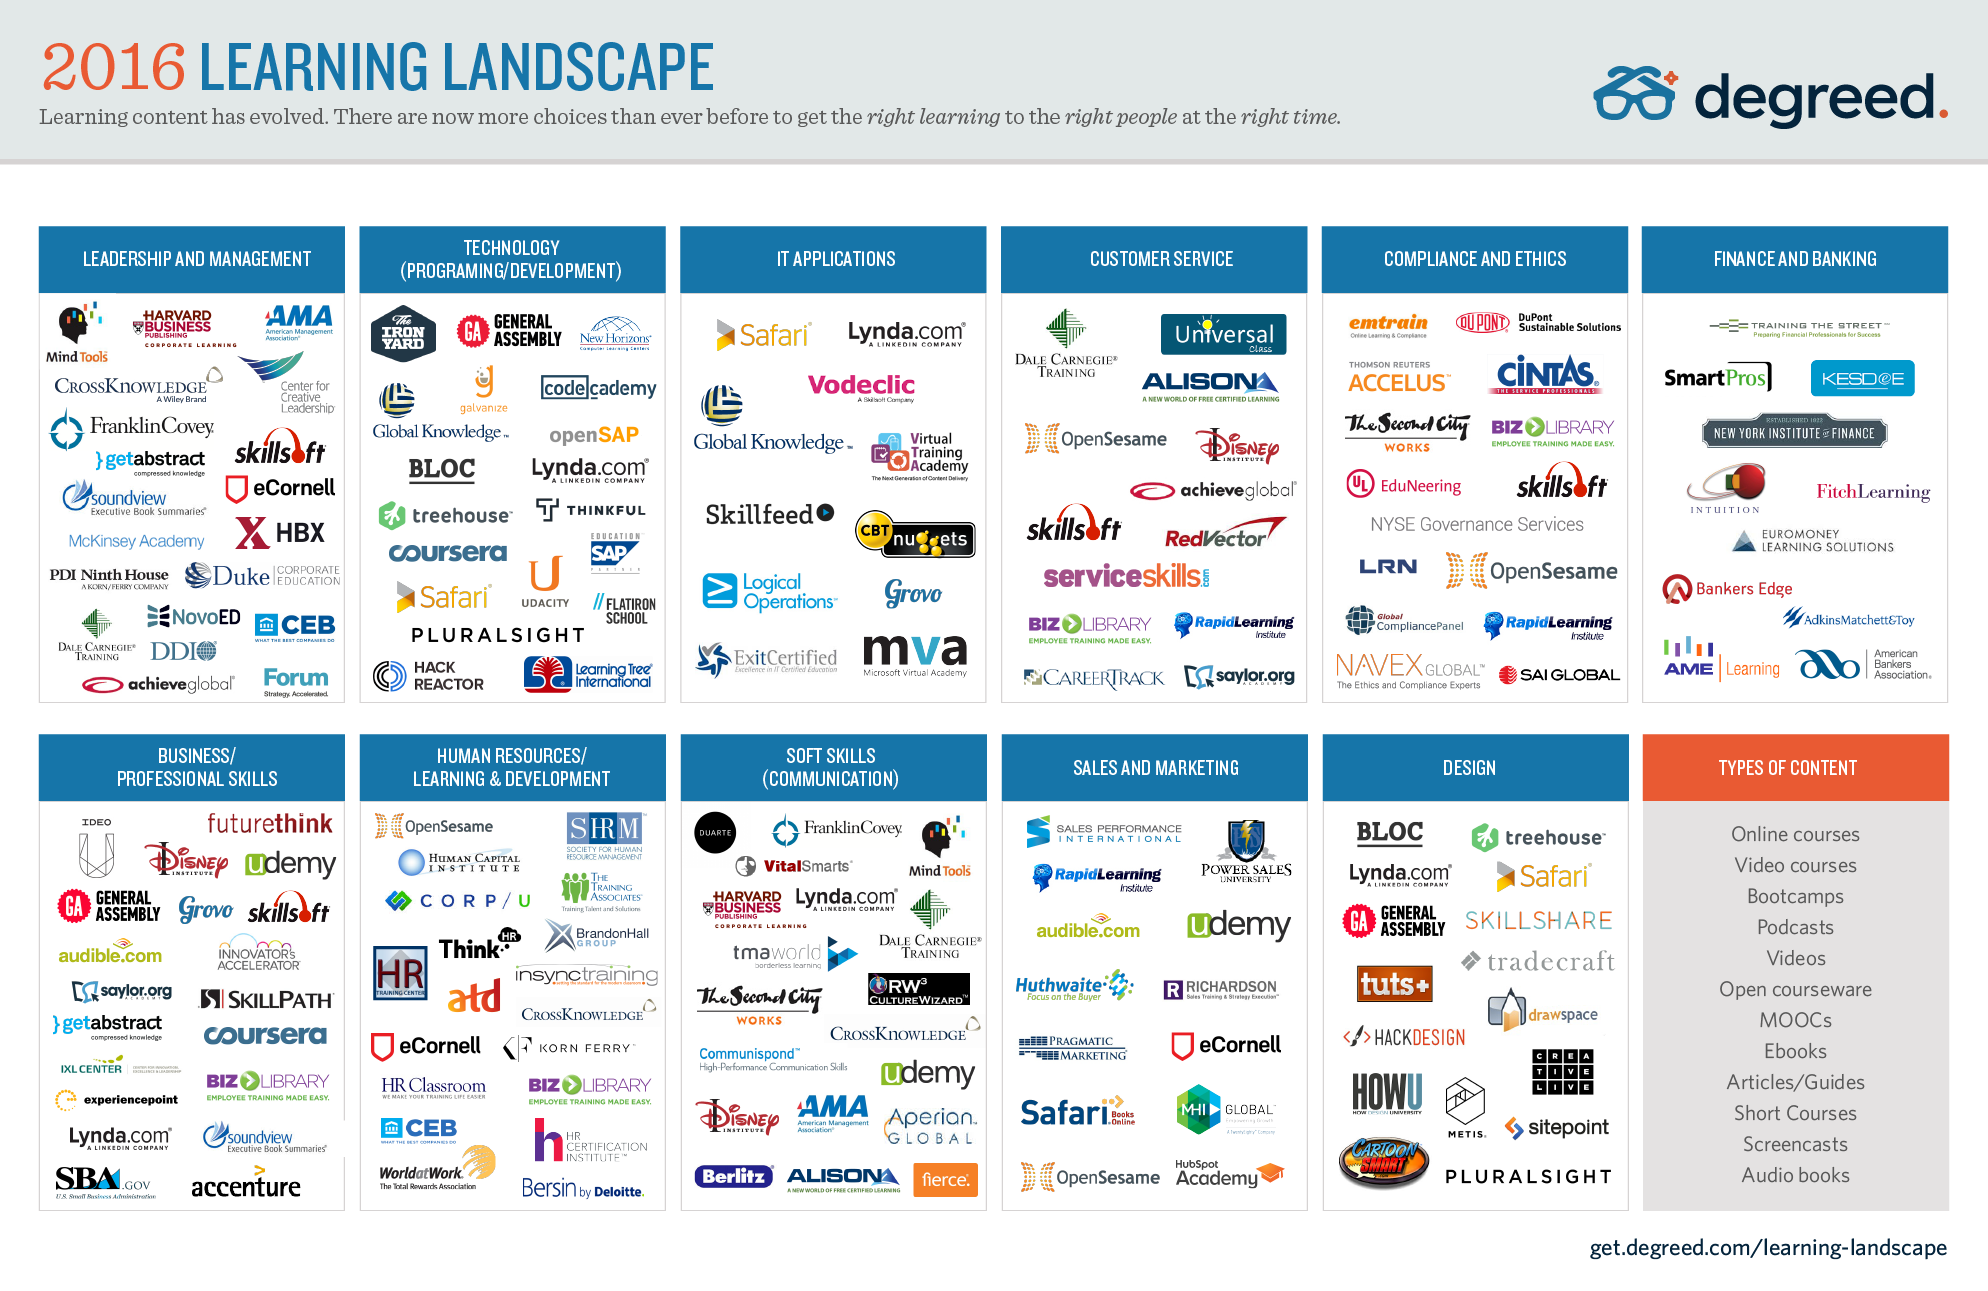 Strategy_Degreed_2016_Learning_Landscape